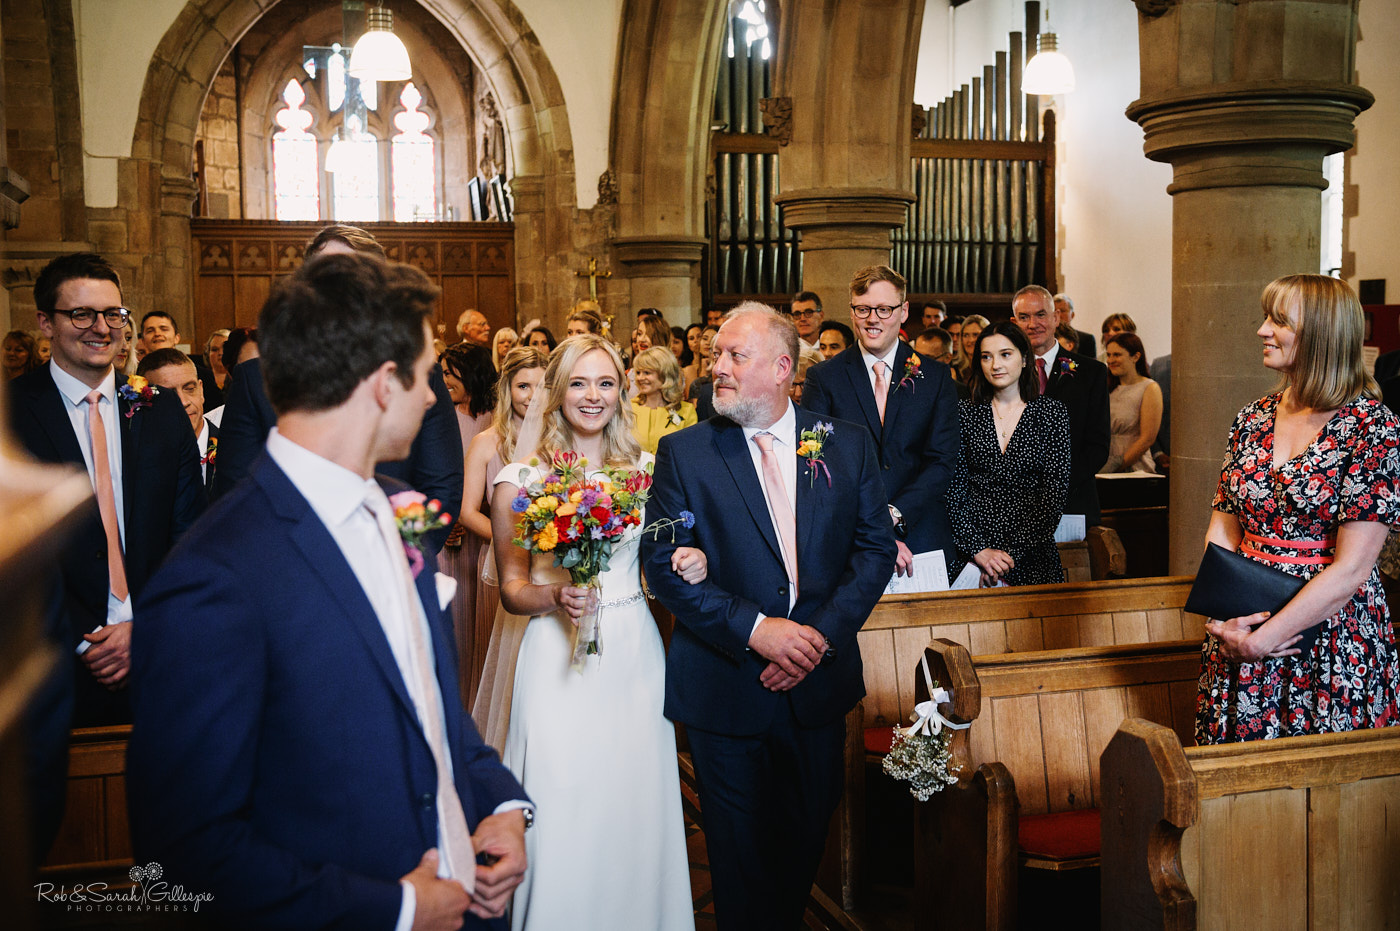 Groom turns to see bride as she walks up the aisle in church